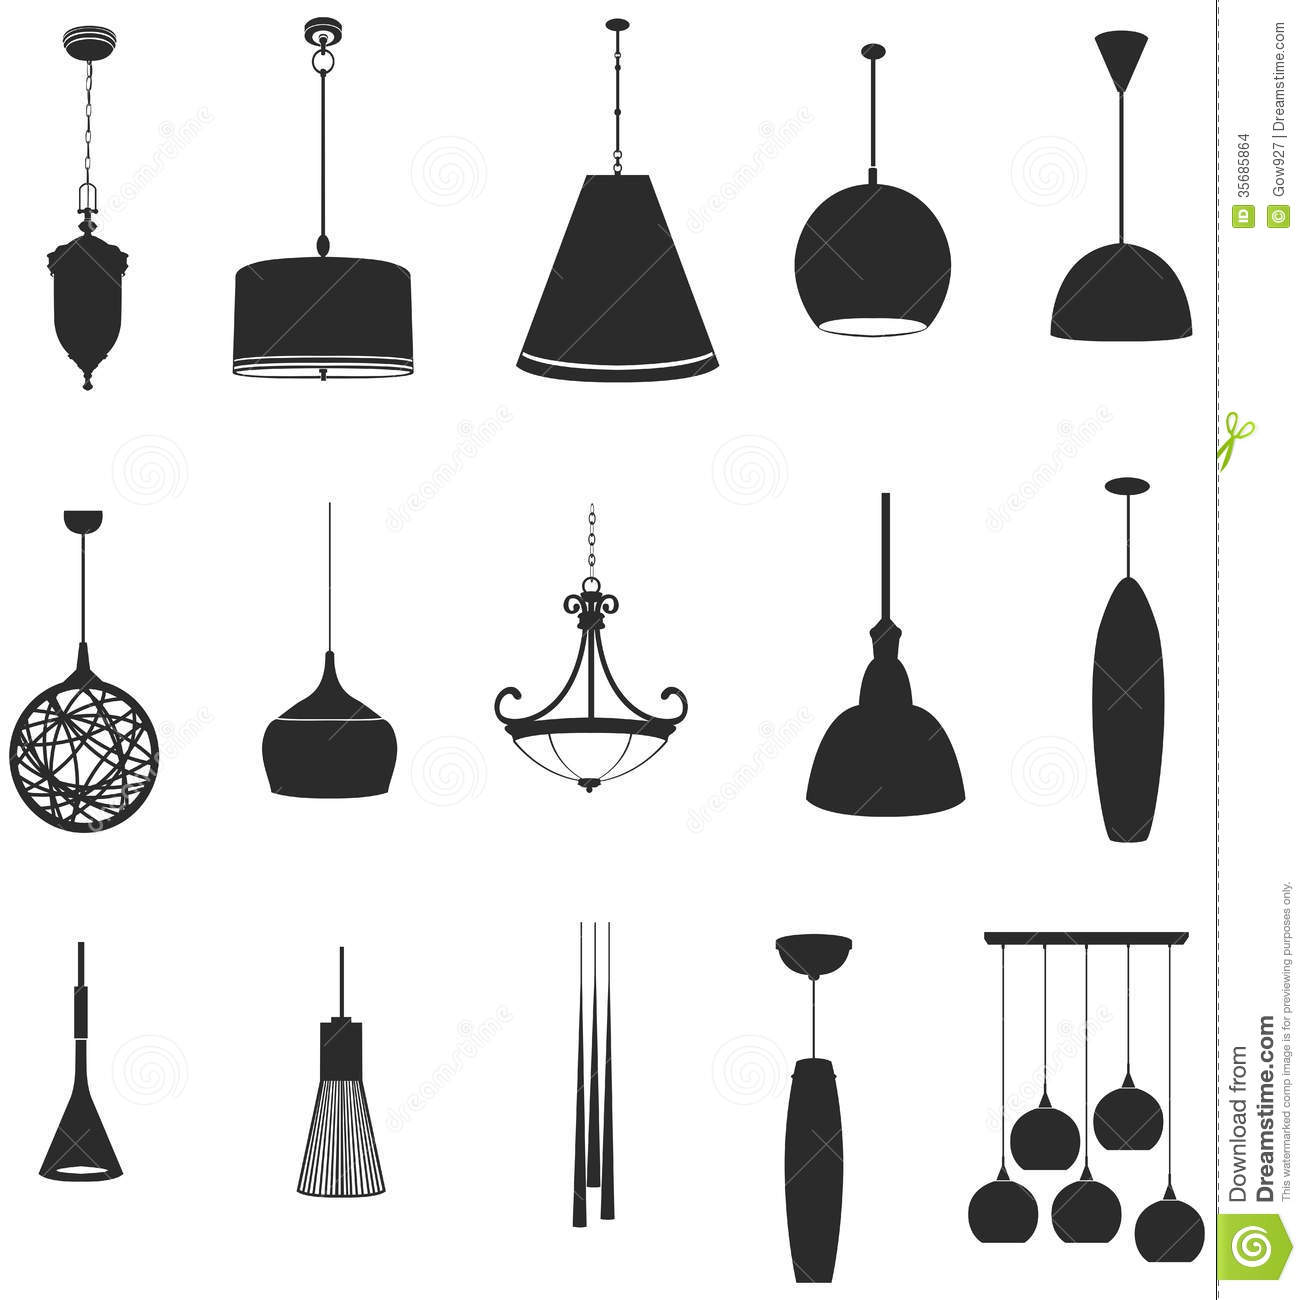 Bedroom Light Fixture Sets Of Silhouette Lamps 2 Create By Vector Stock Vector